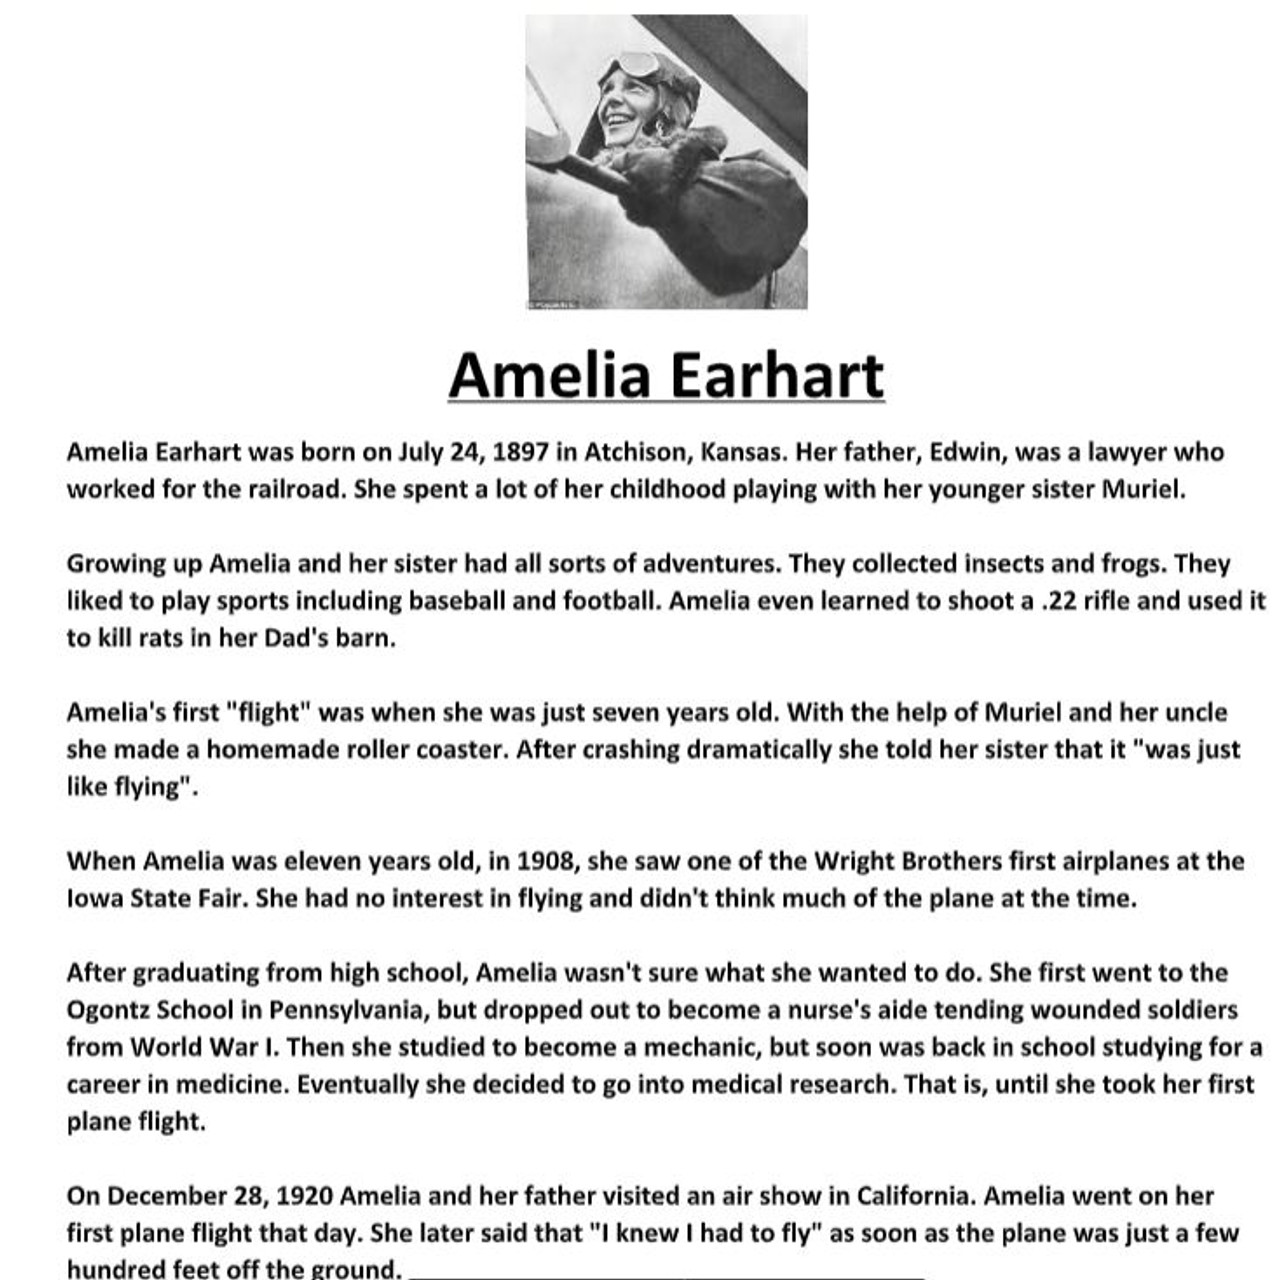 hight resolution of Amelia Earhart Biography and Assignment Worksheet - Amped Up Learning